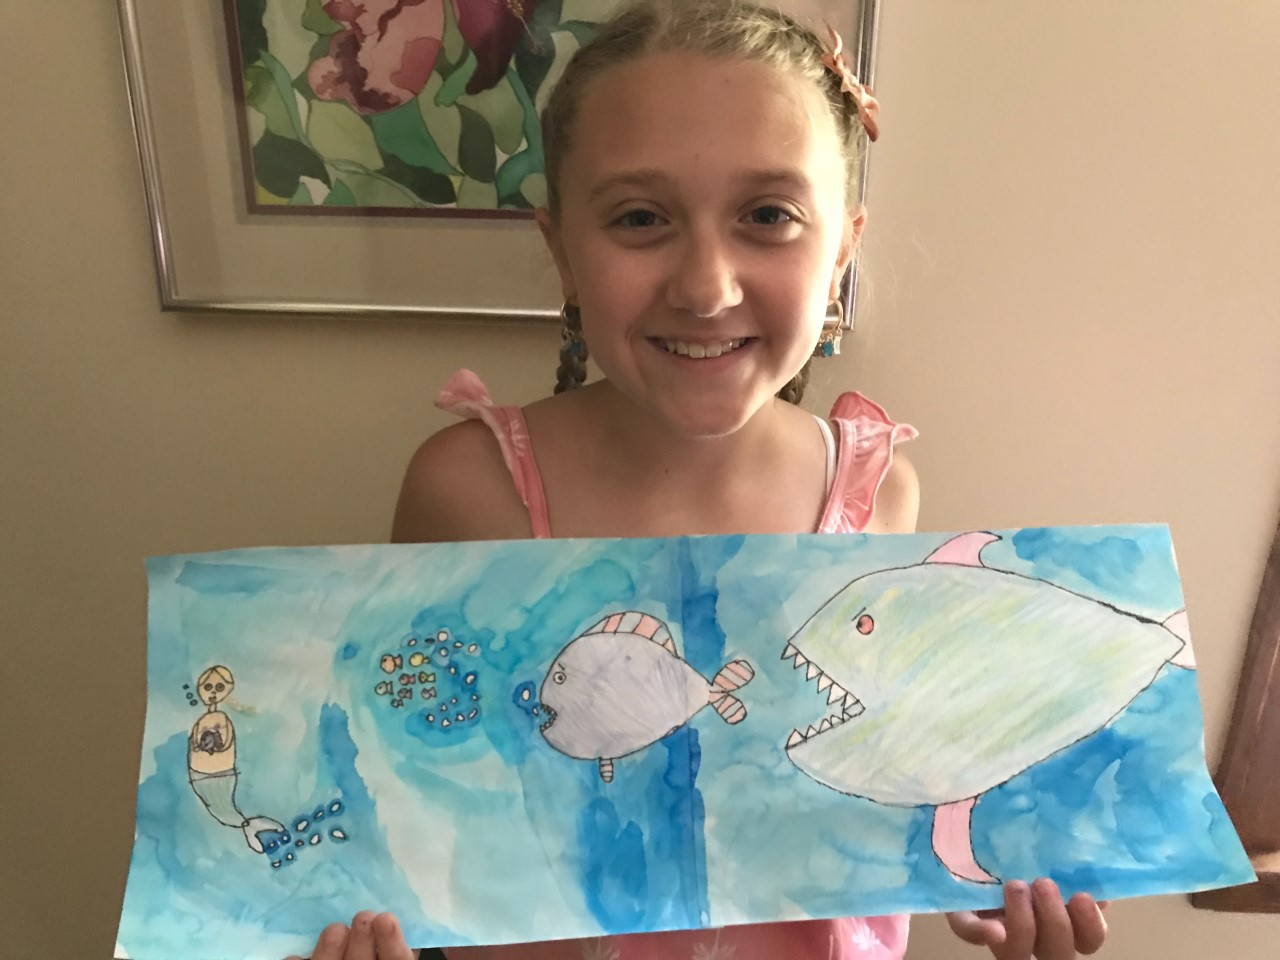 For her Fox Chase drawing, Cali chose fish.